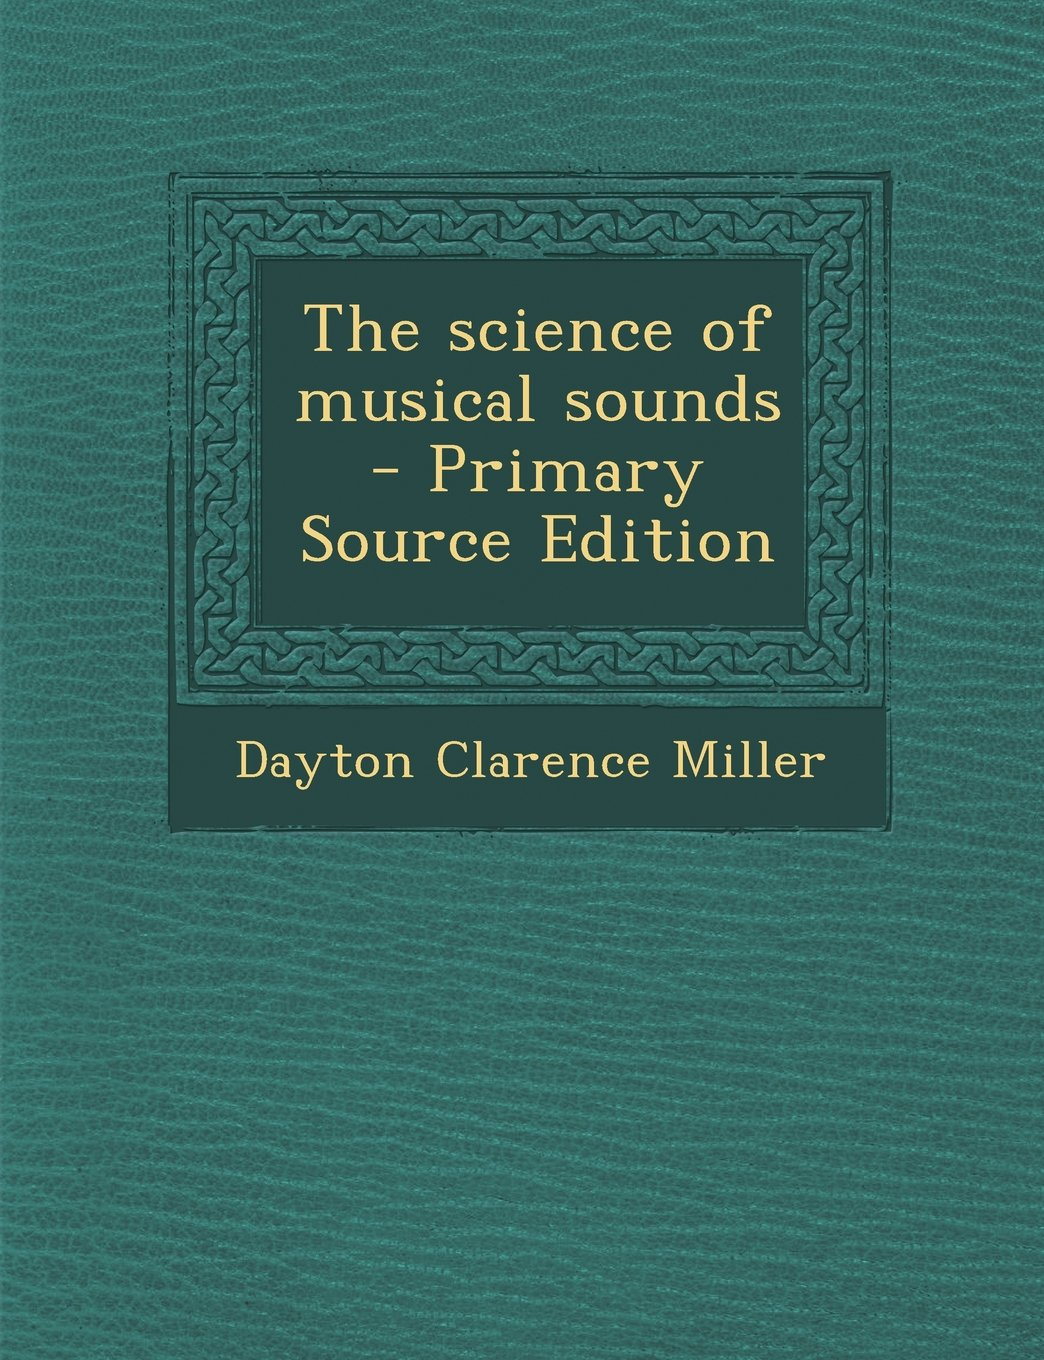 The science of musical sounds pdf